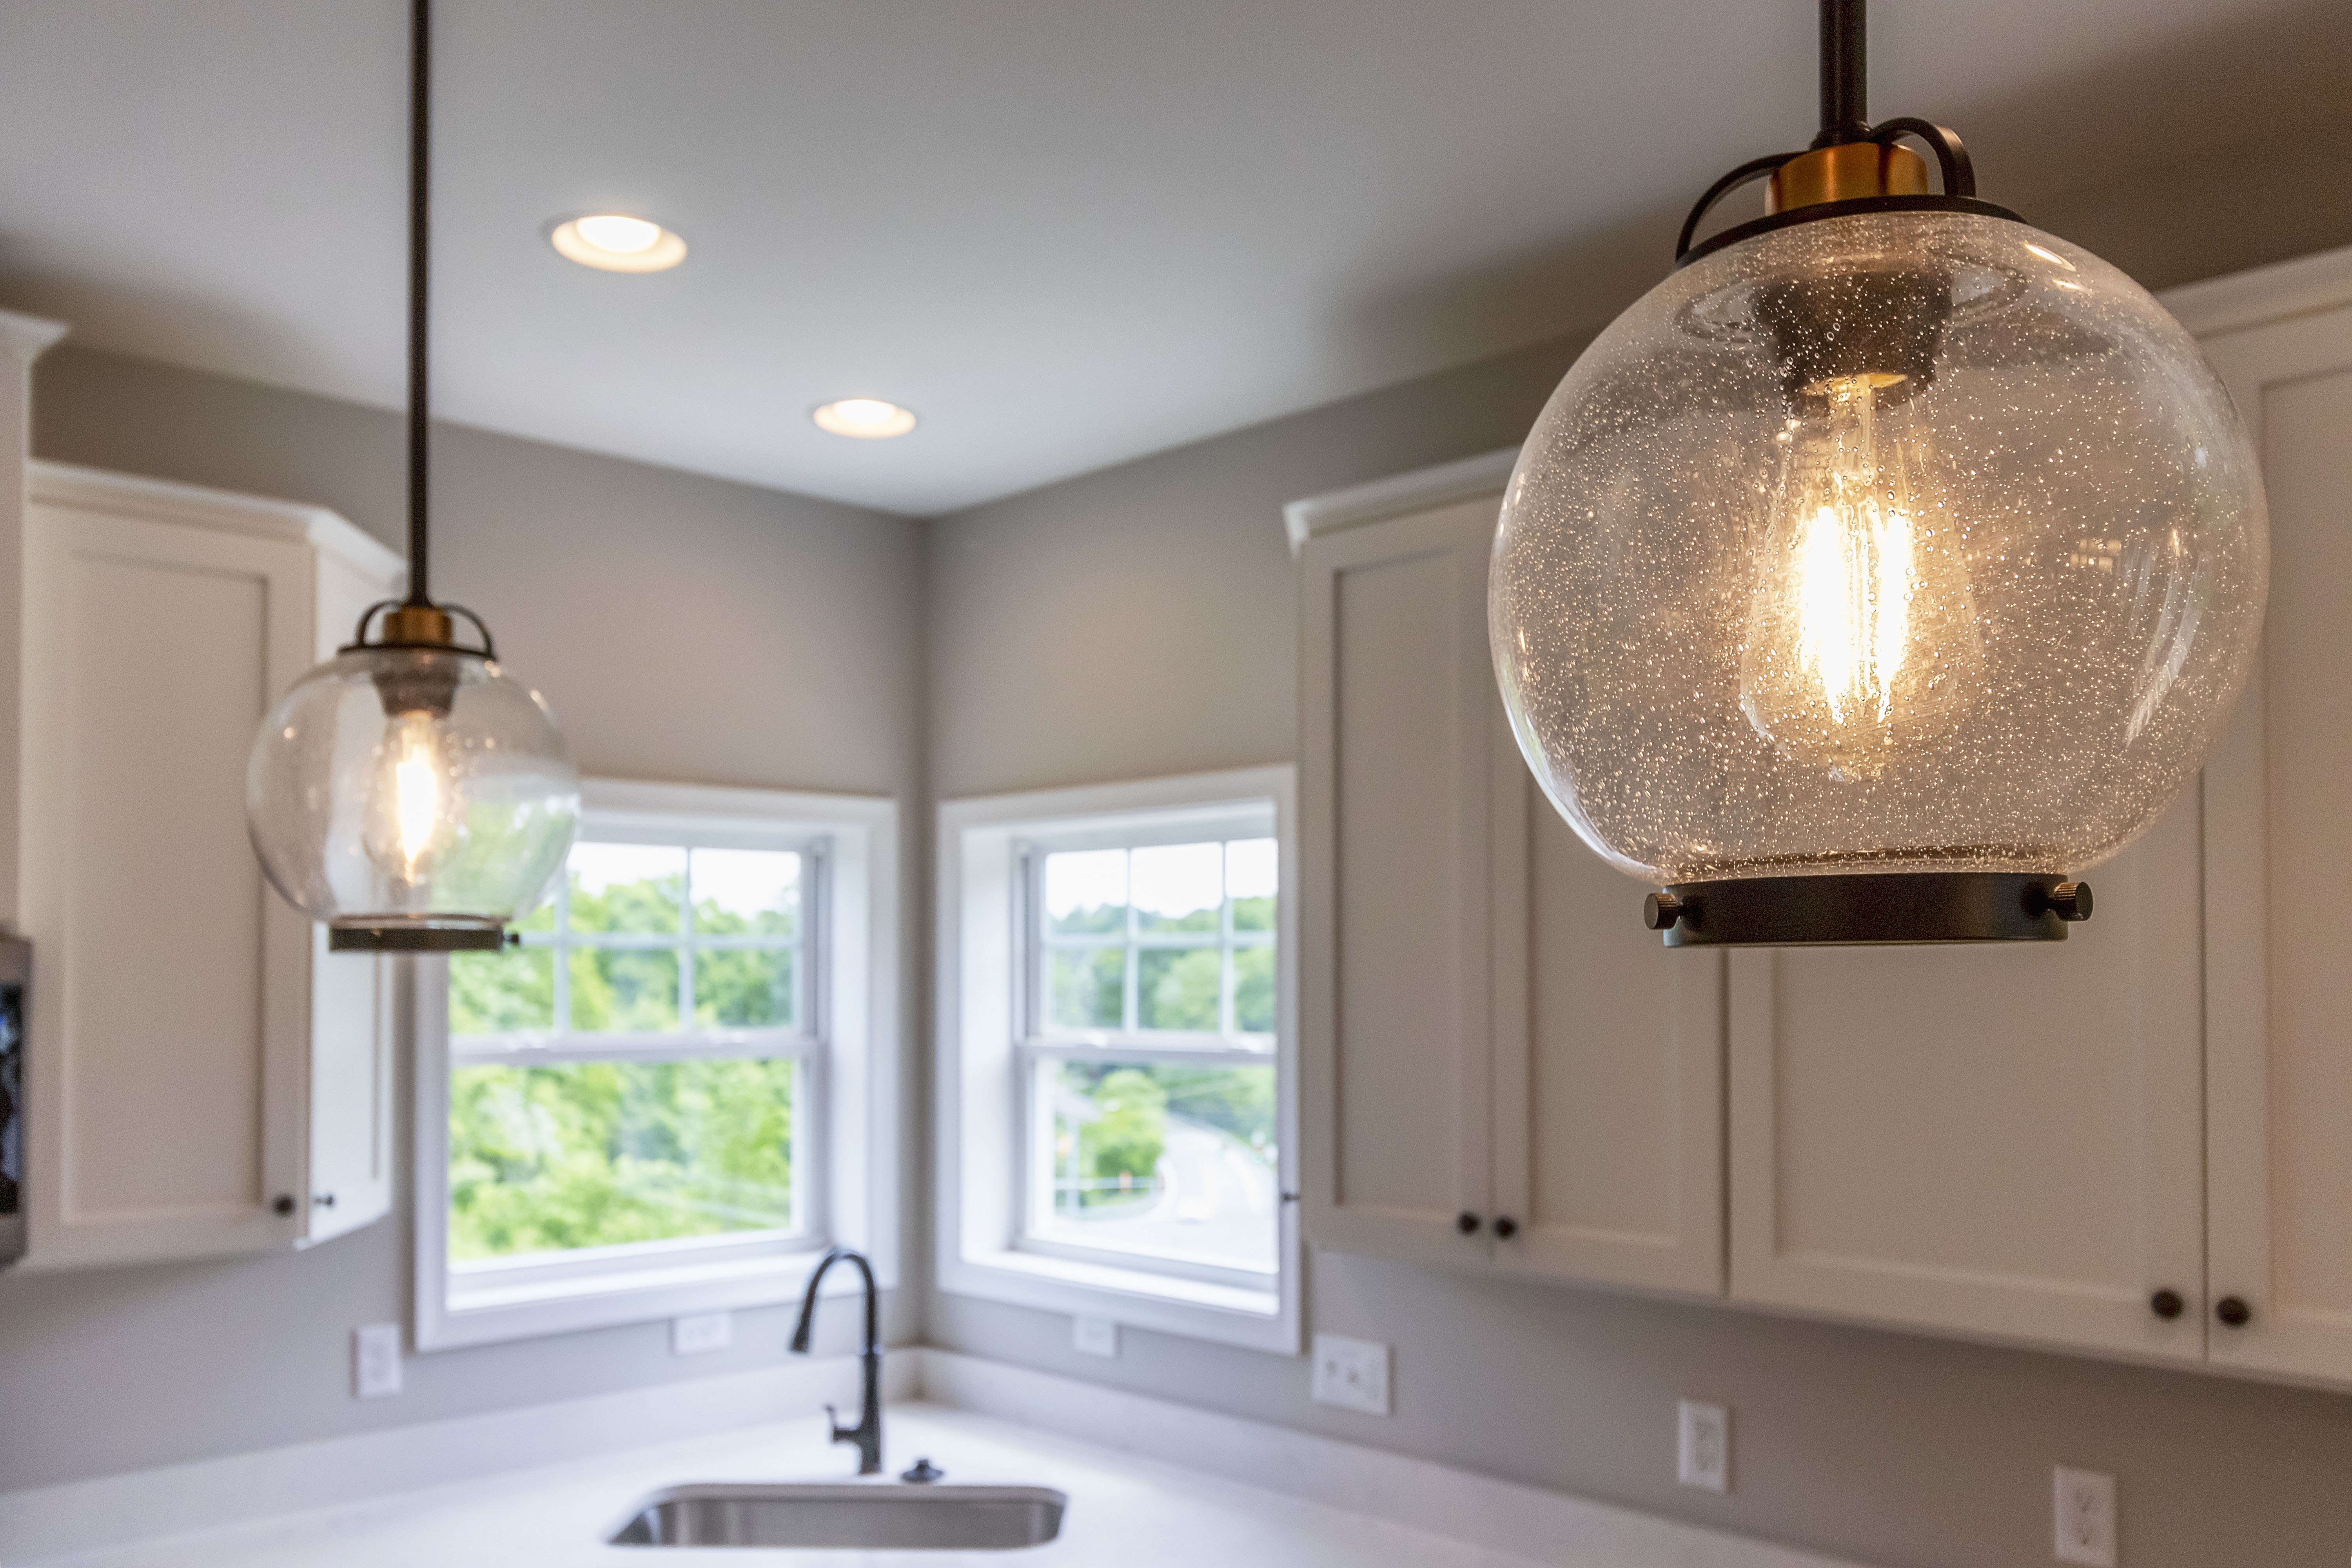 Lighting Trends in S&A Homes